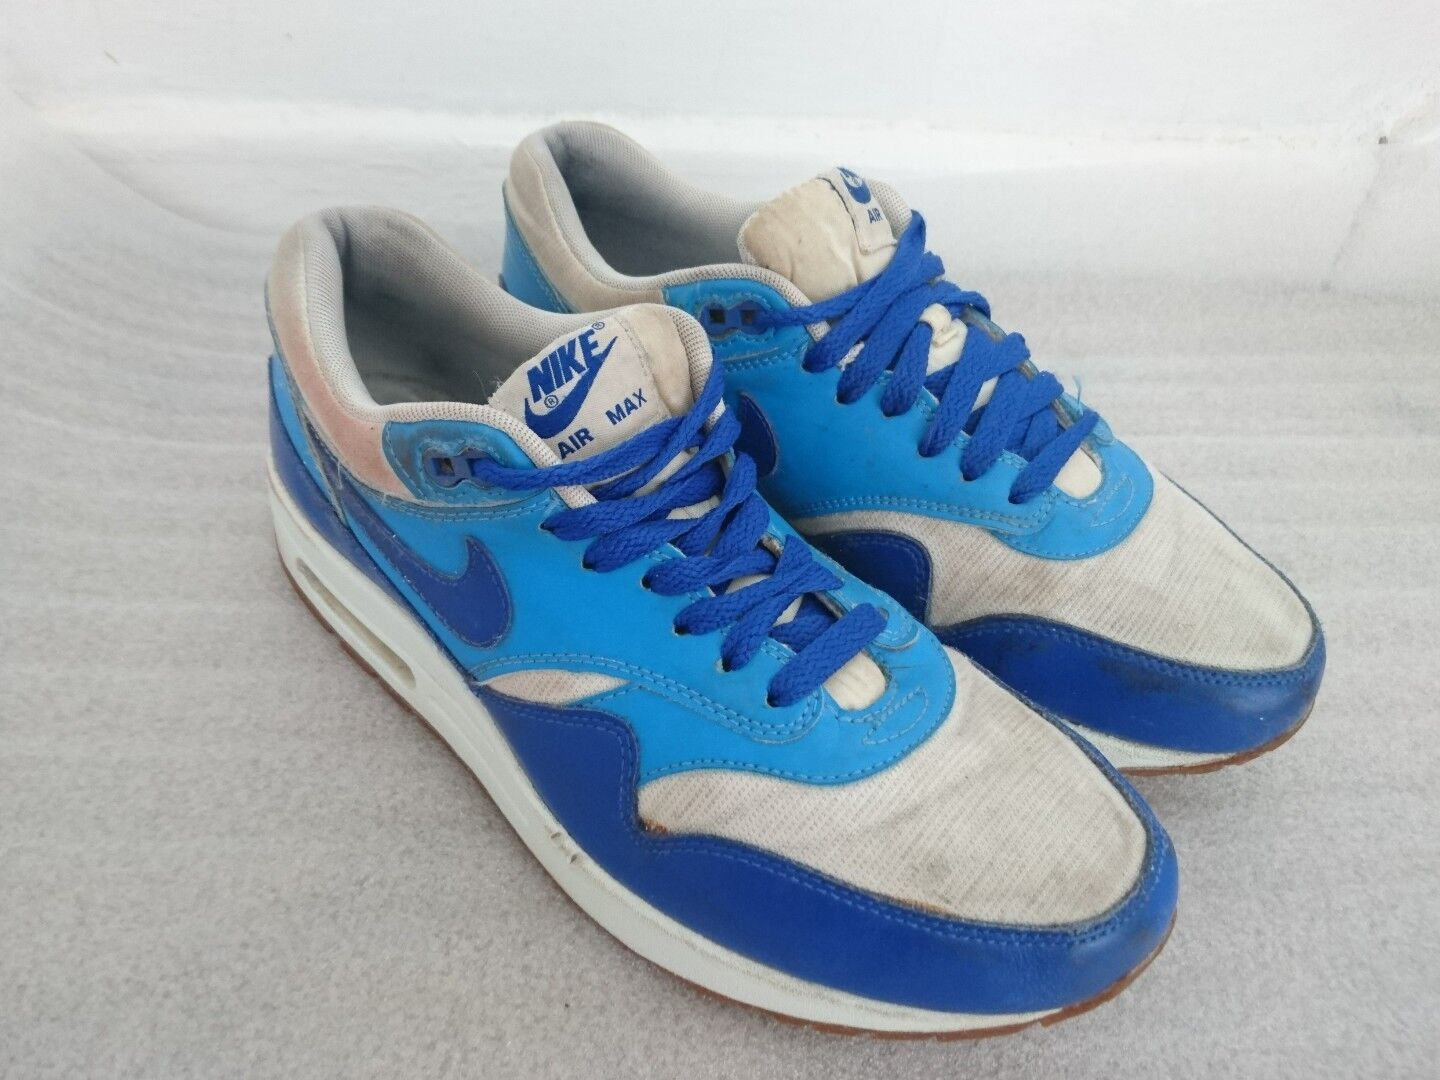 Nike Air Max 1 Vintage Trainers Size UK 6 EU 40 Hyper bluee 555284-105